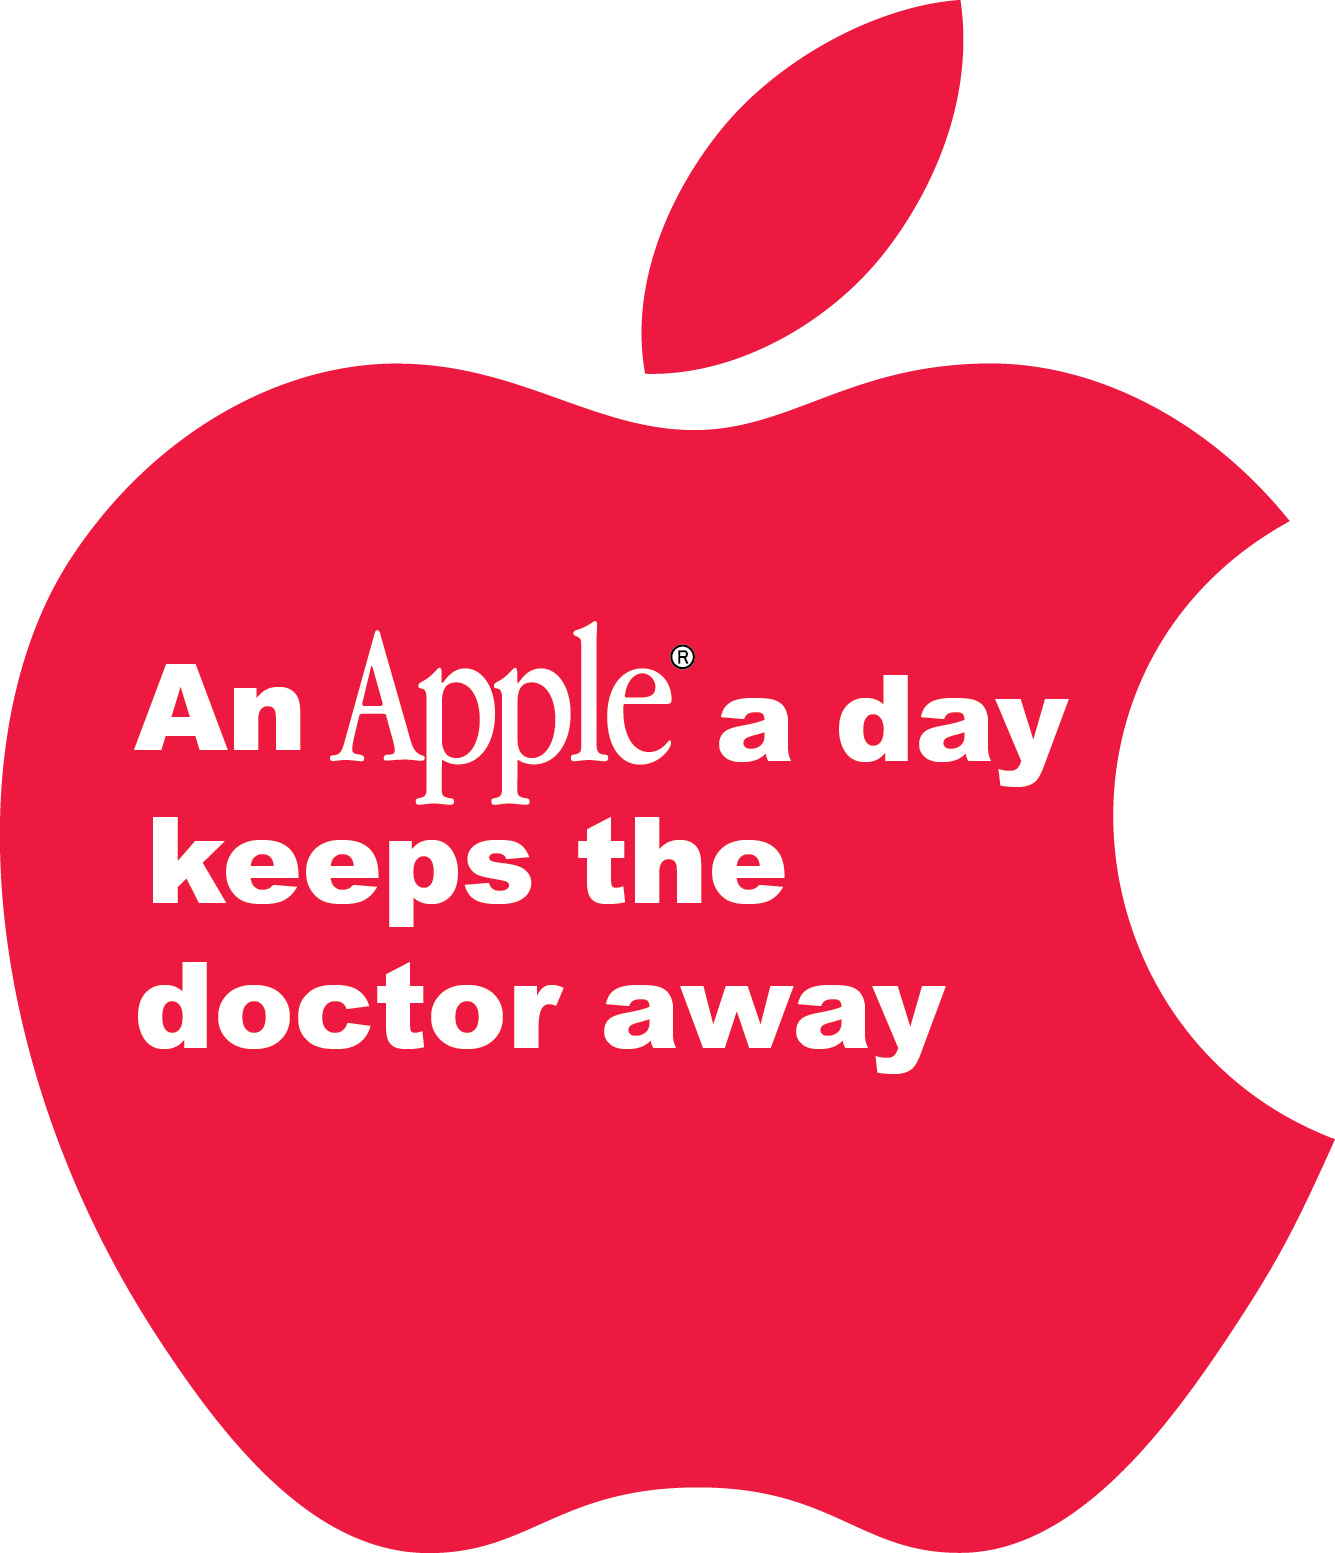 an apple a day keeps it Prescribing an apple a day to all adults aged 50 and over would prevent or delay around 8,500 vascular deaths such as heart attacks and strokes every year in the uk.